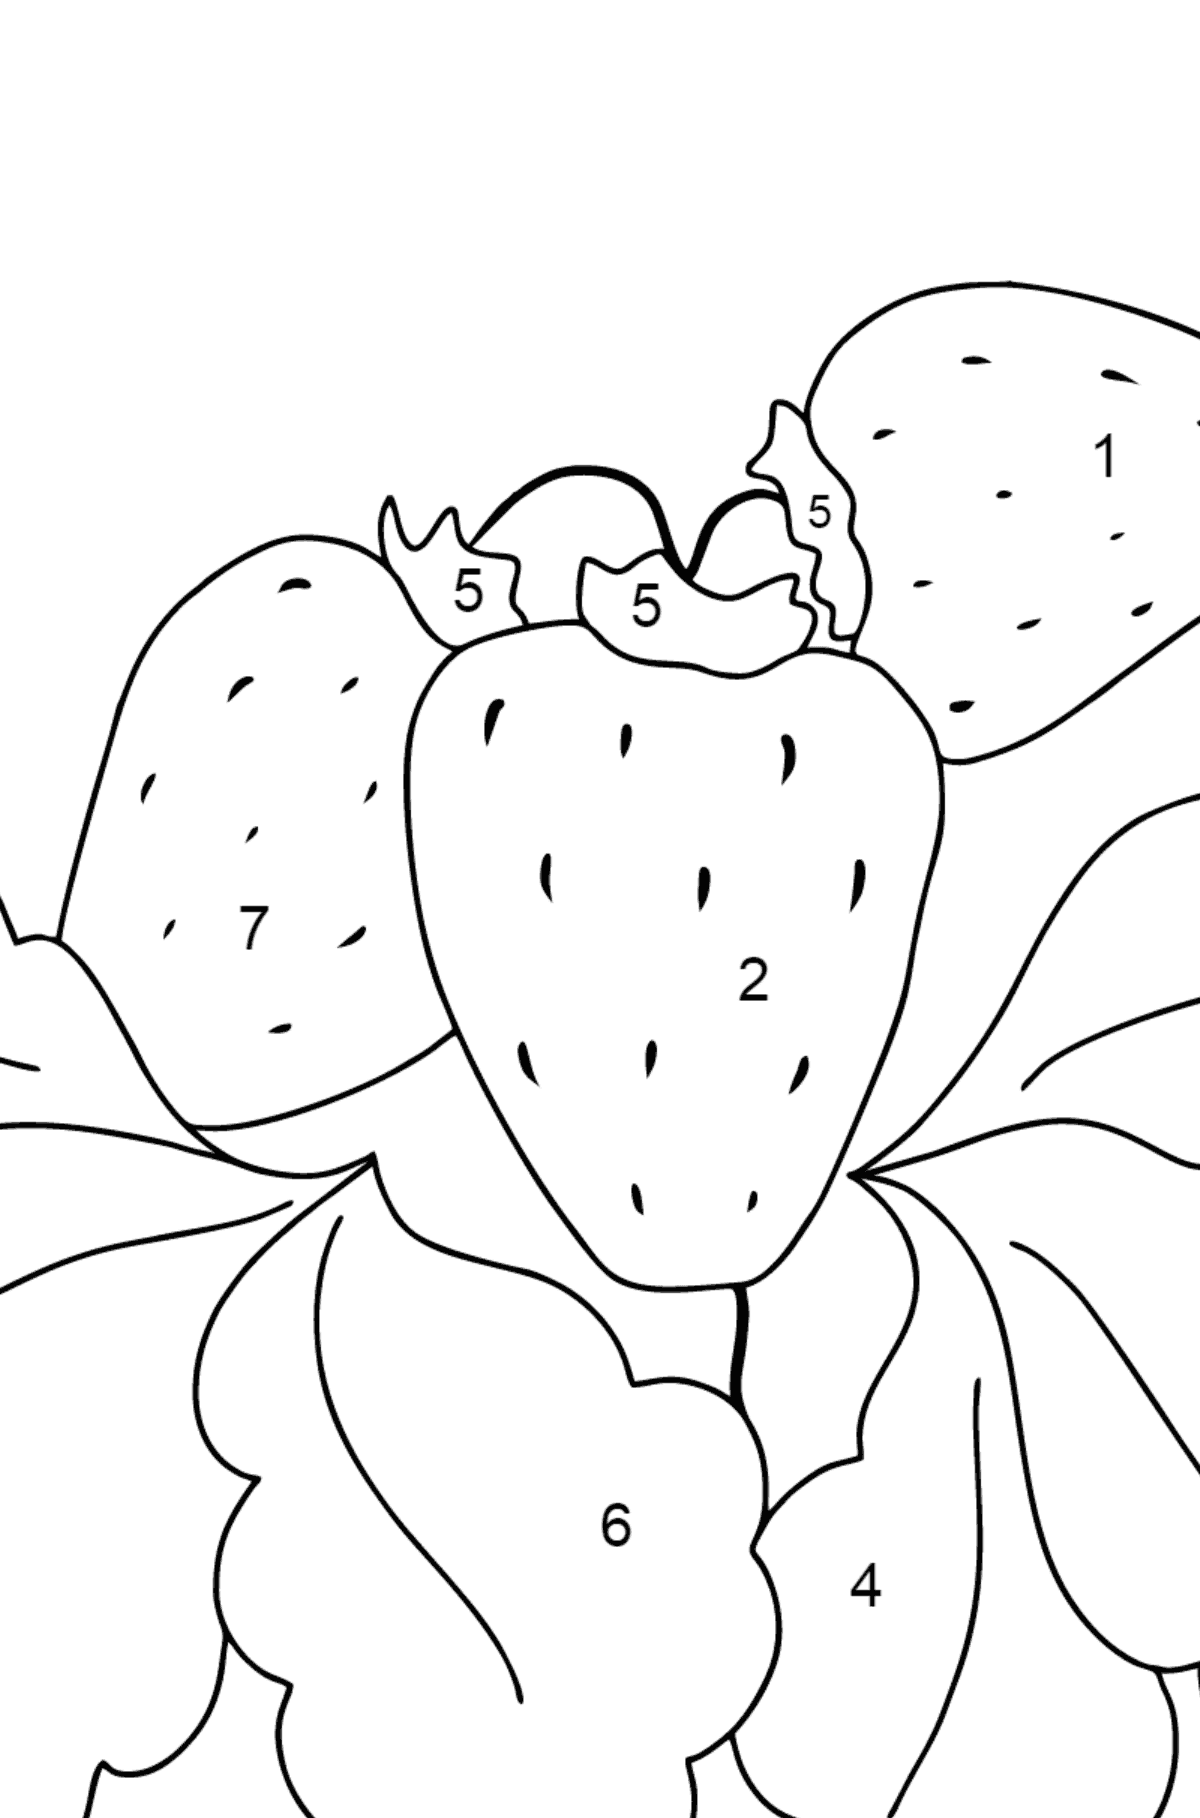 Coloring Page - Summer and Strawberries - Coloring by Numbers for Children